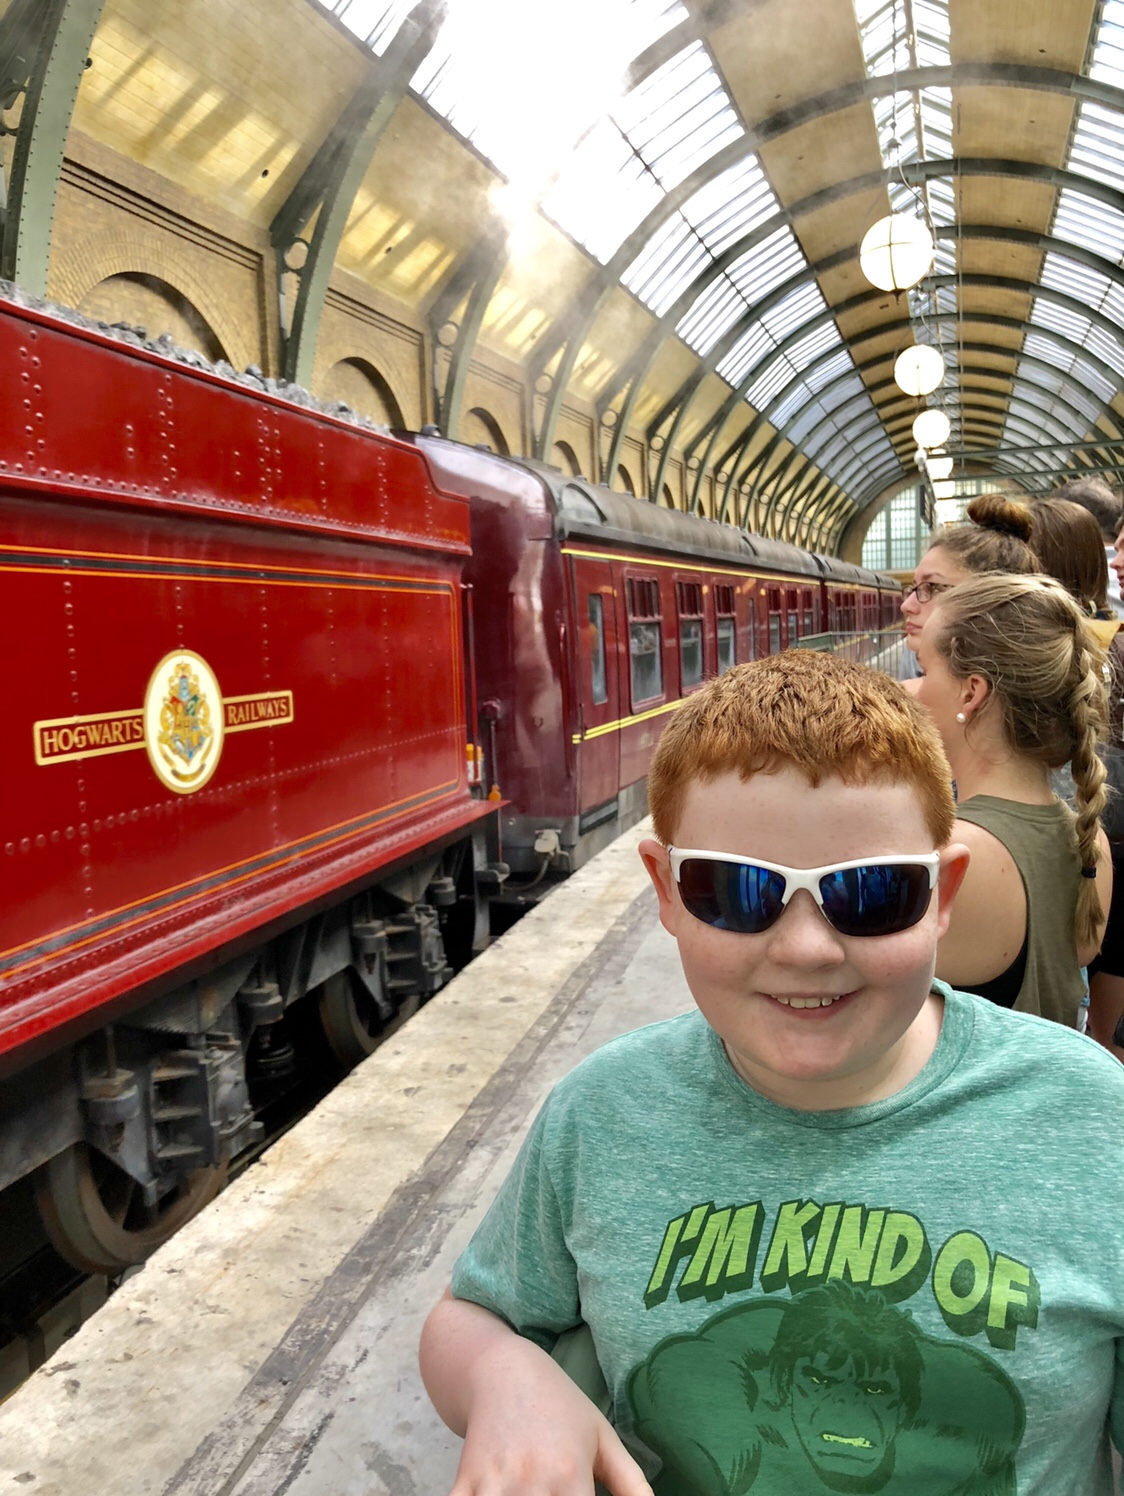 Hogwart's Express | The Wizarding World of Harry Potter #harrypotter #hogwartsexpress #harrypotterrides #universalstudios #kingscrossstation